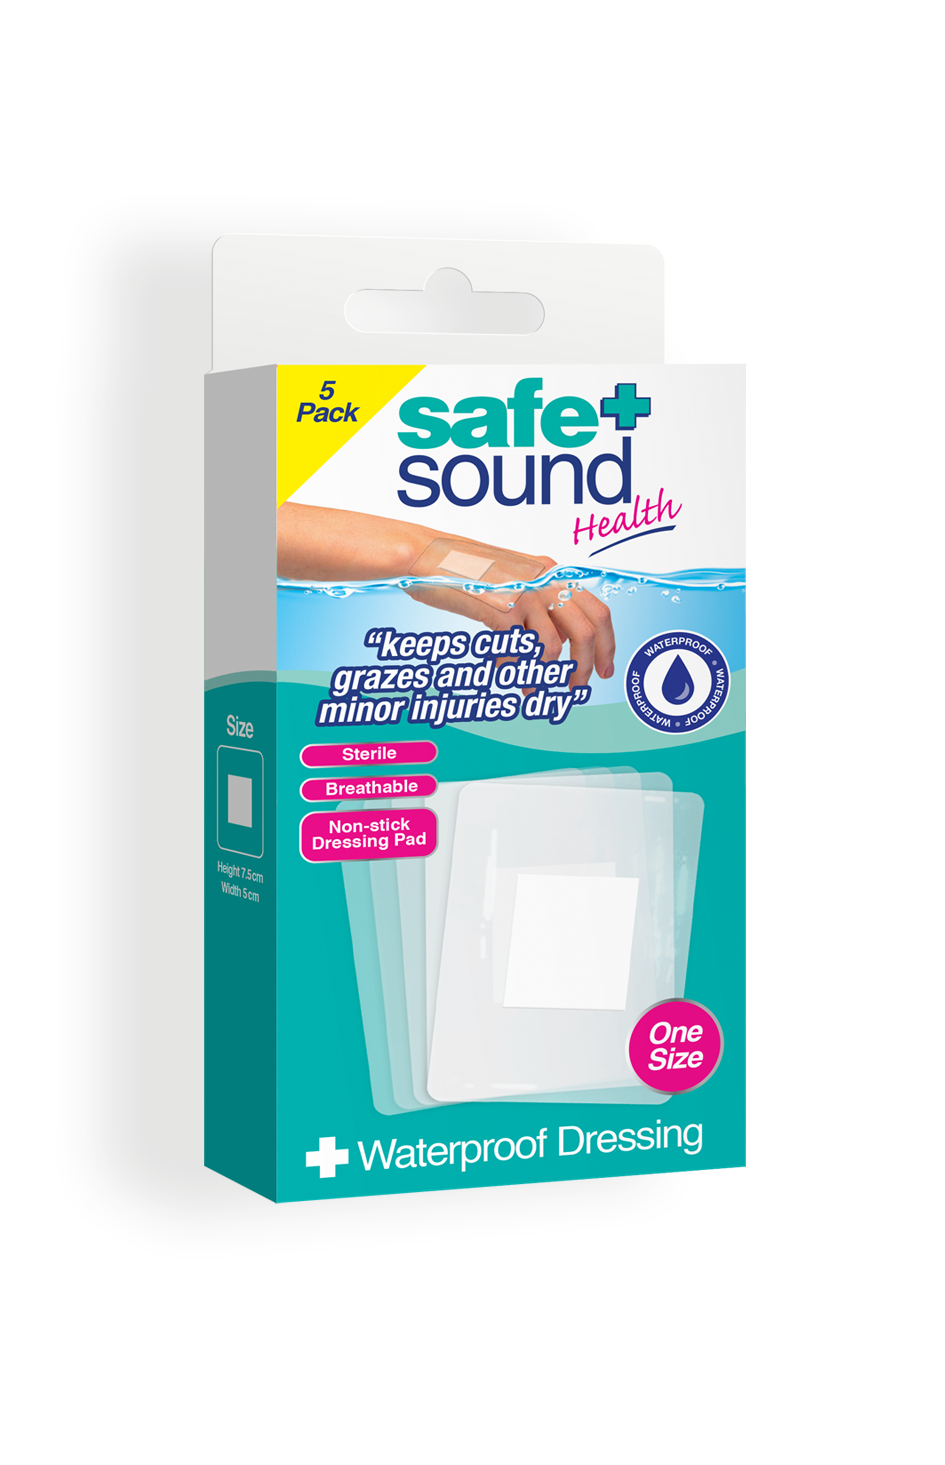 Safe and Sound Health's Waterproof Dressing